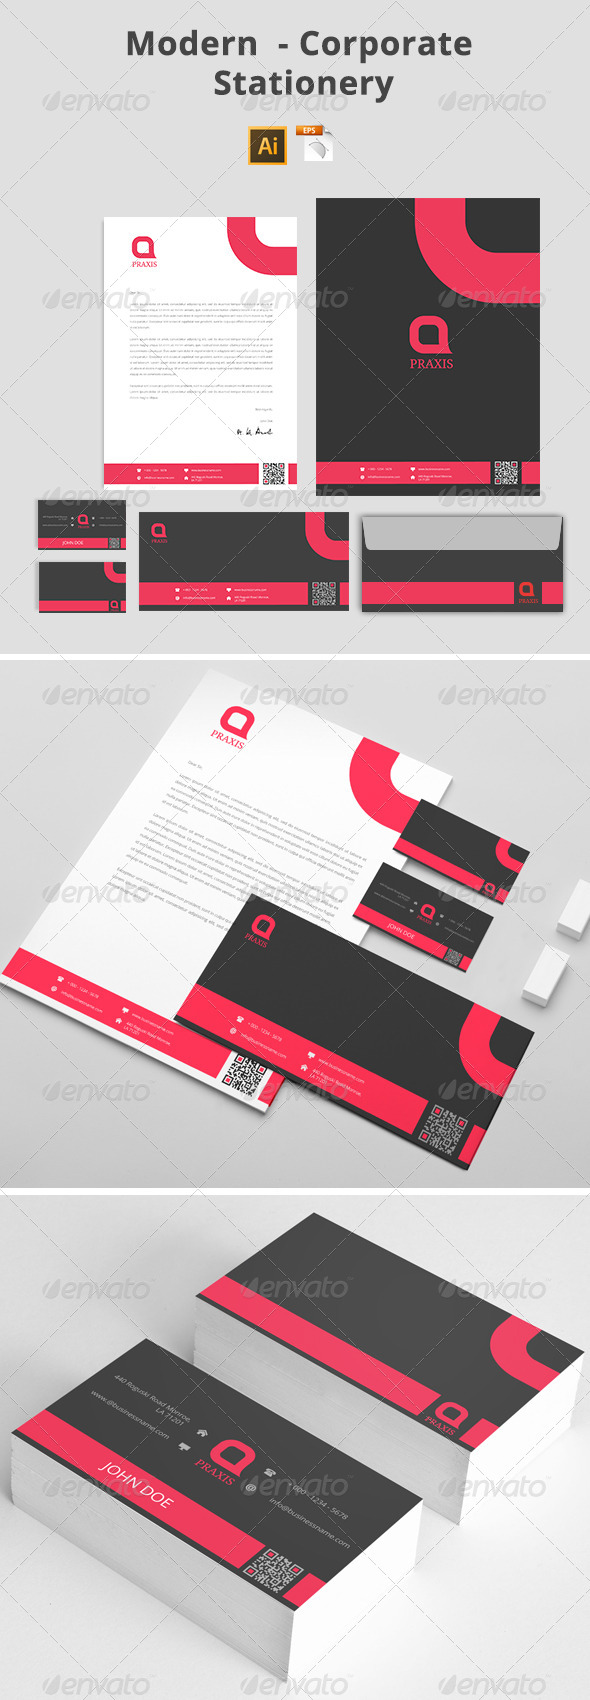 GraphicRiver Modern Corporate Stationery 8020176